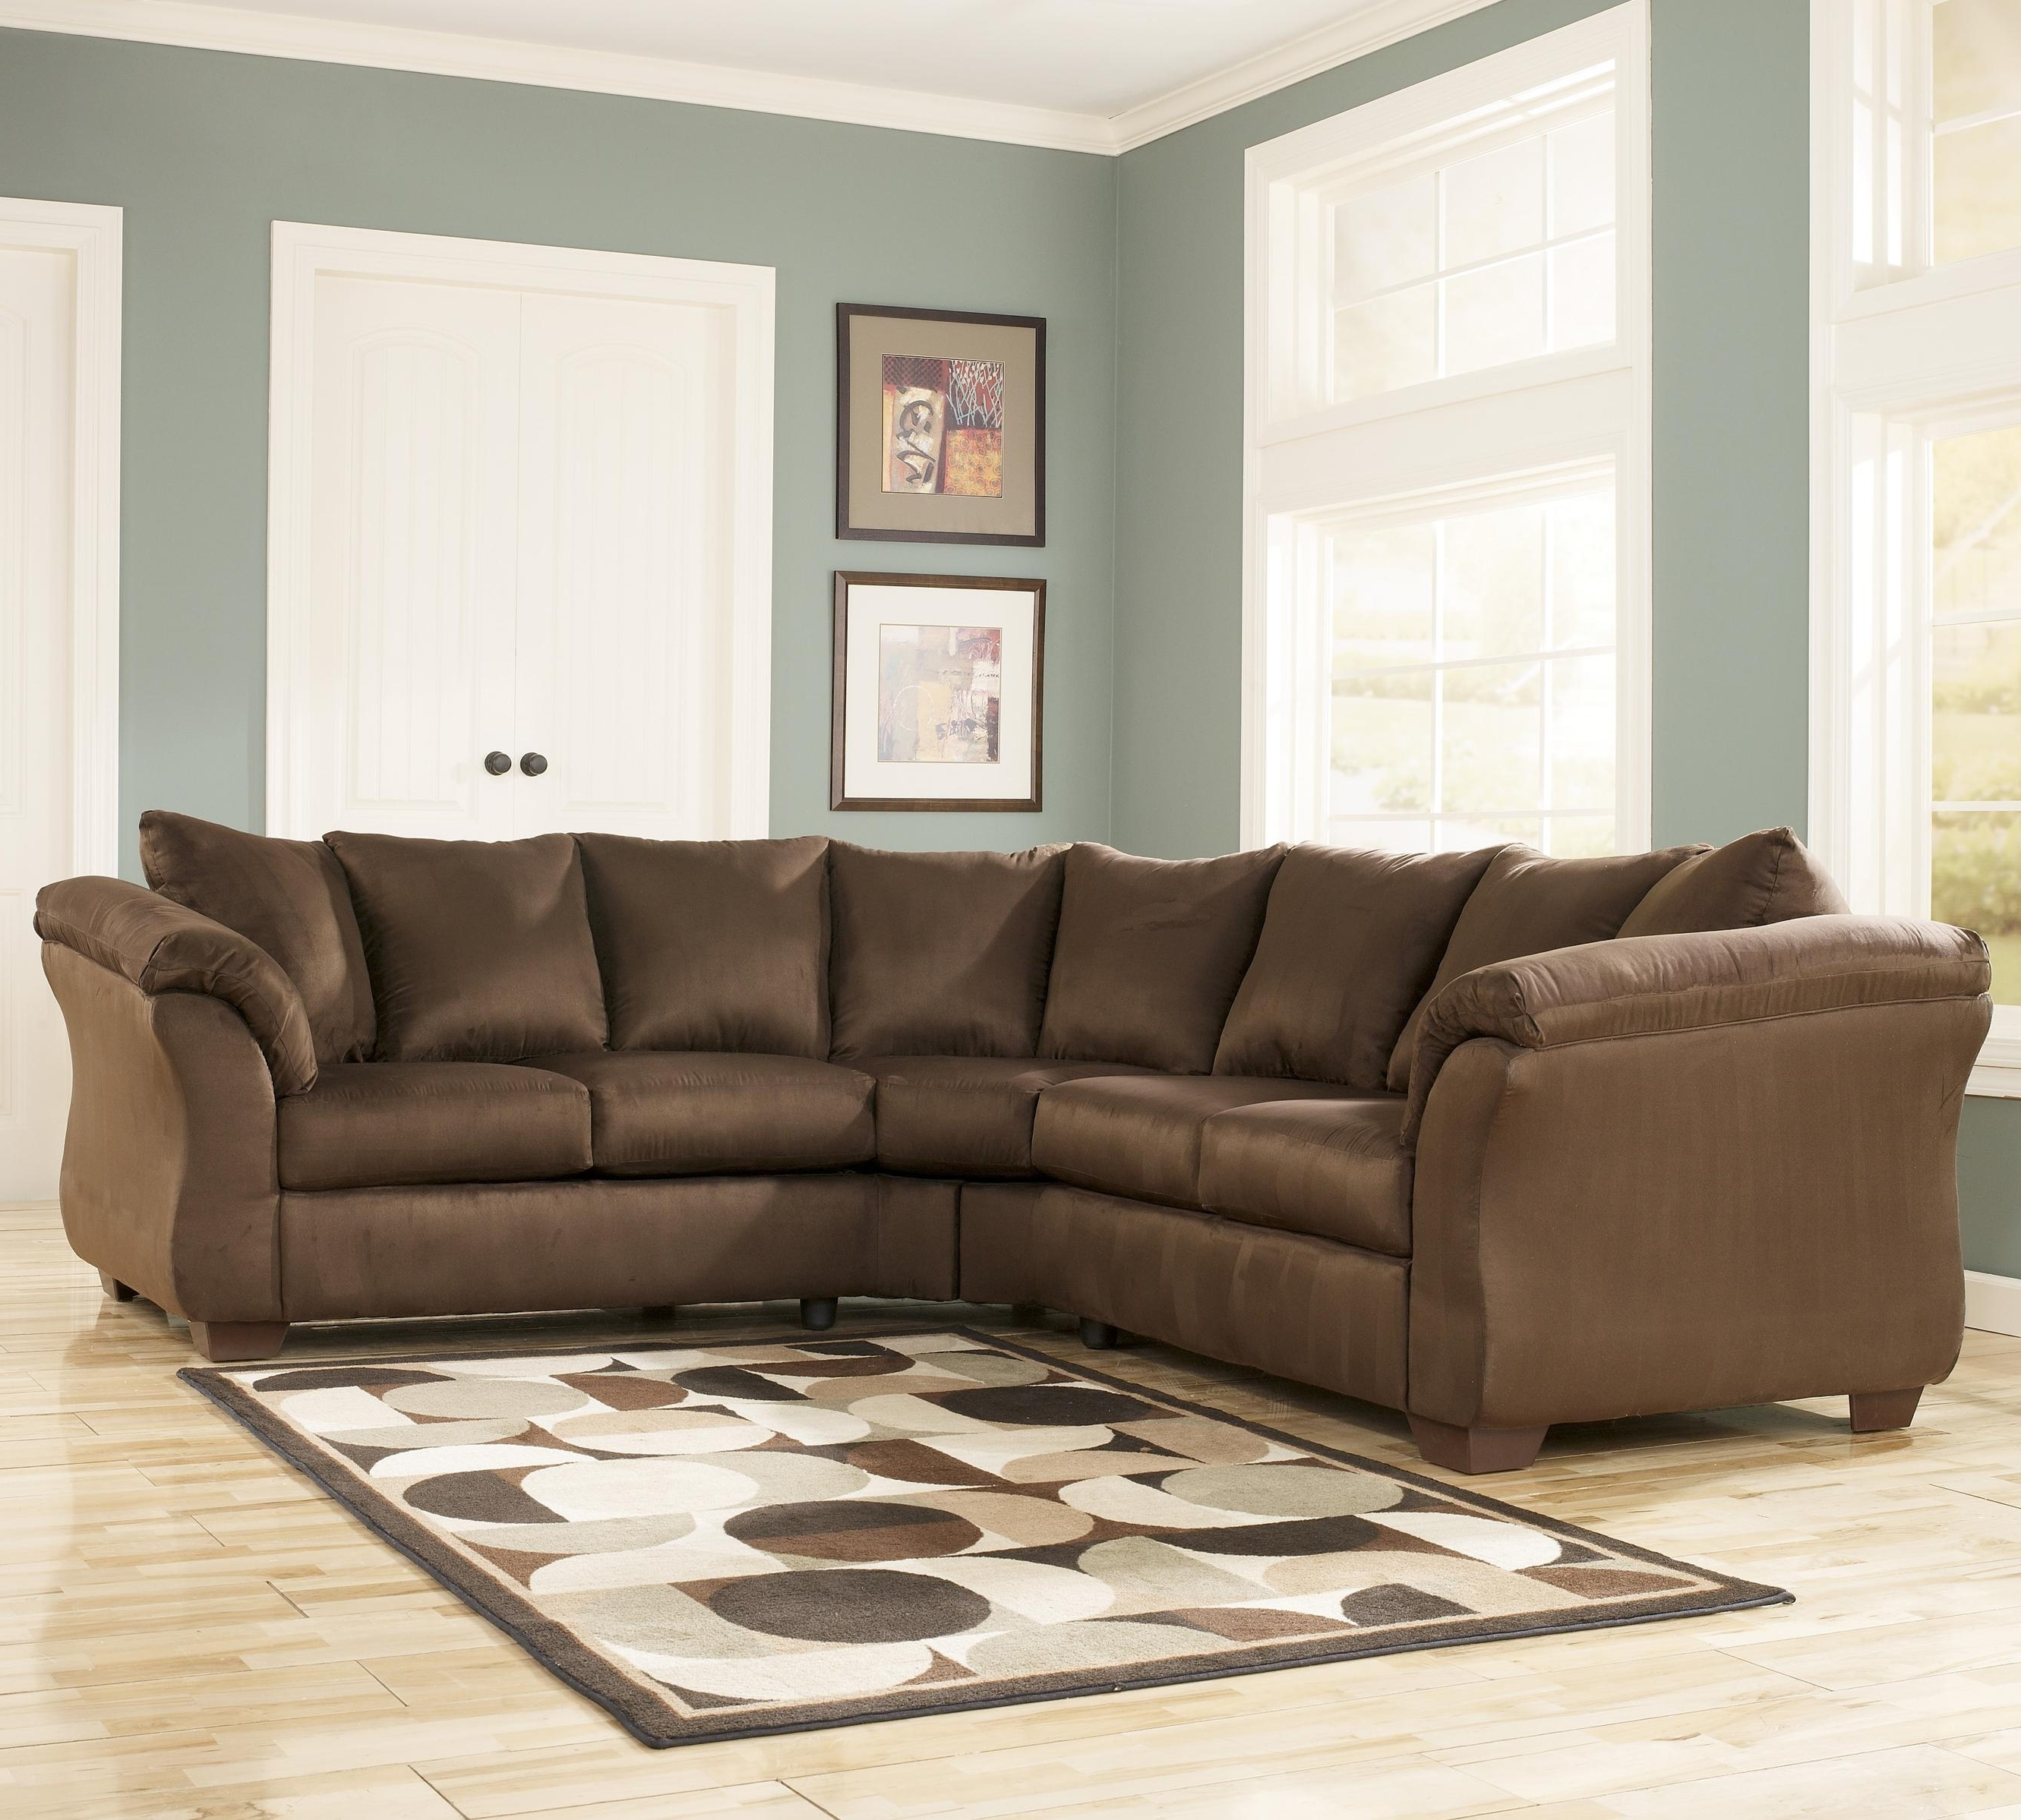 2017 Contemporary Sectional Sofa With Sweeping Pillow Armssignature With Gardiners Sectional Sofas (View 1 of 15)